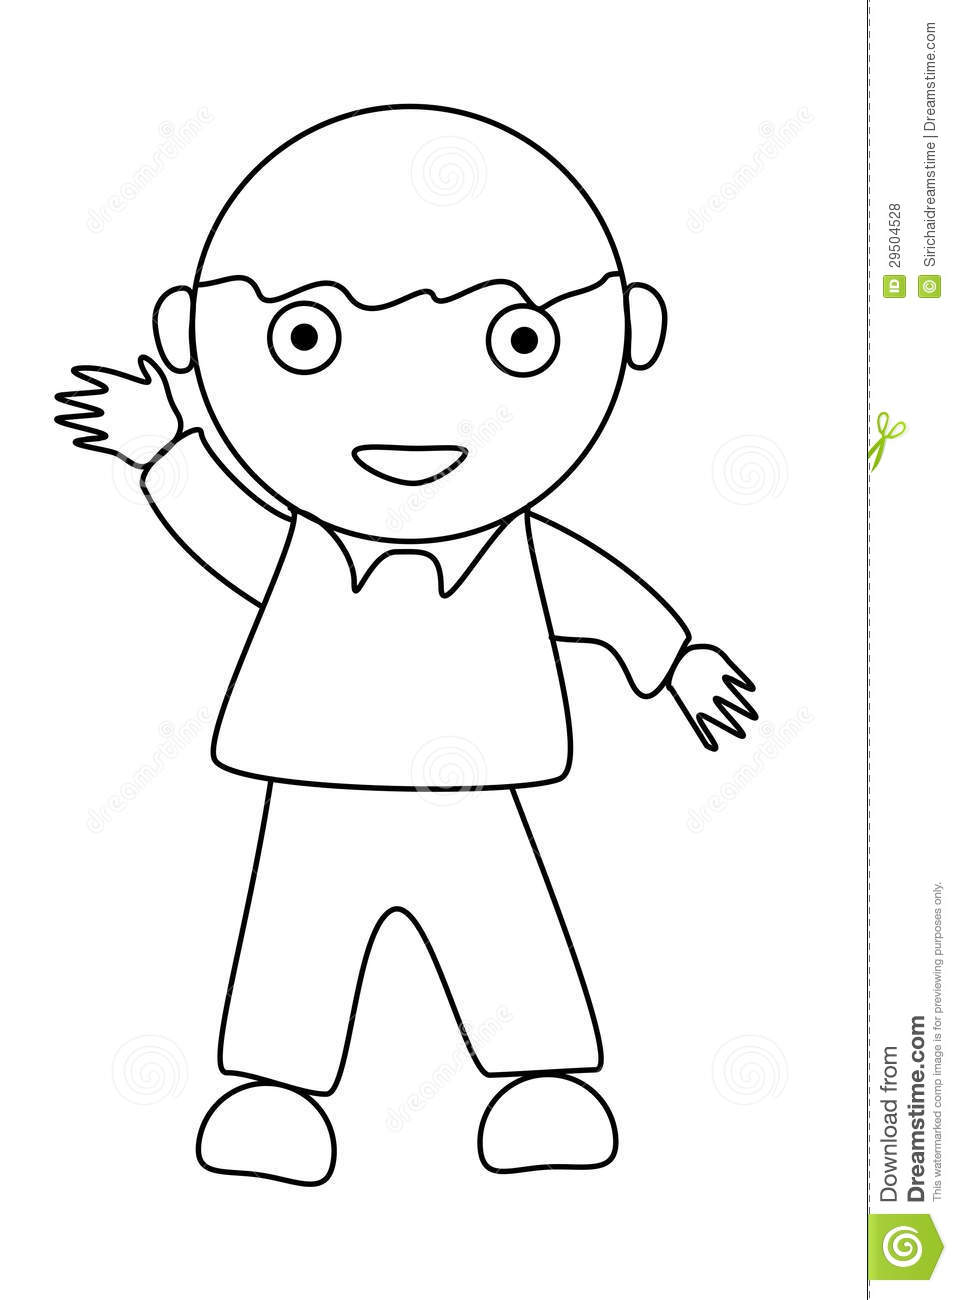 Simple Cartoon Of A Cute Boy Stock Illustration - Image ...